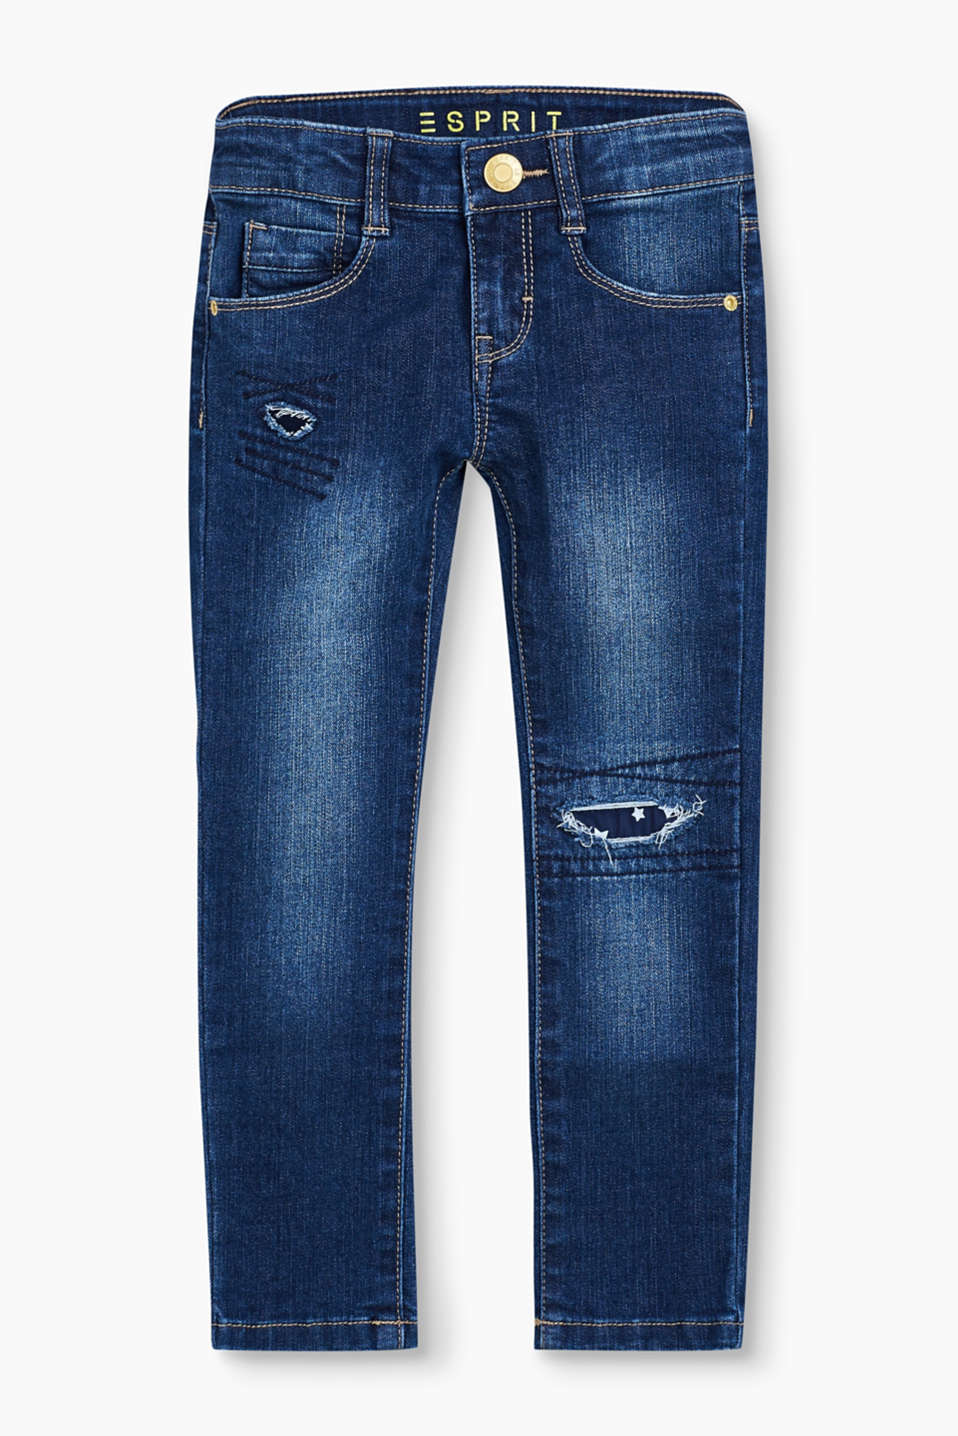 Their destroyed finish makes these 5 pocket, adjustable-waist jeans a captivatingly casual playmate.